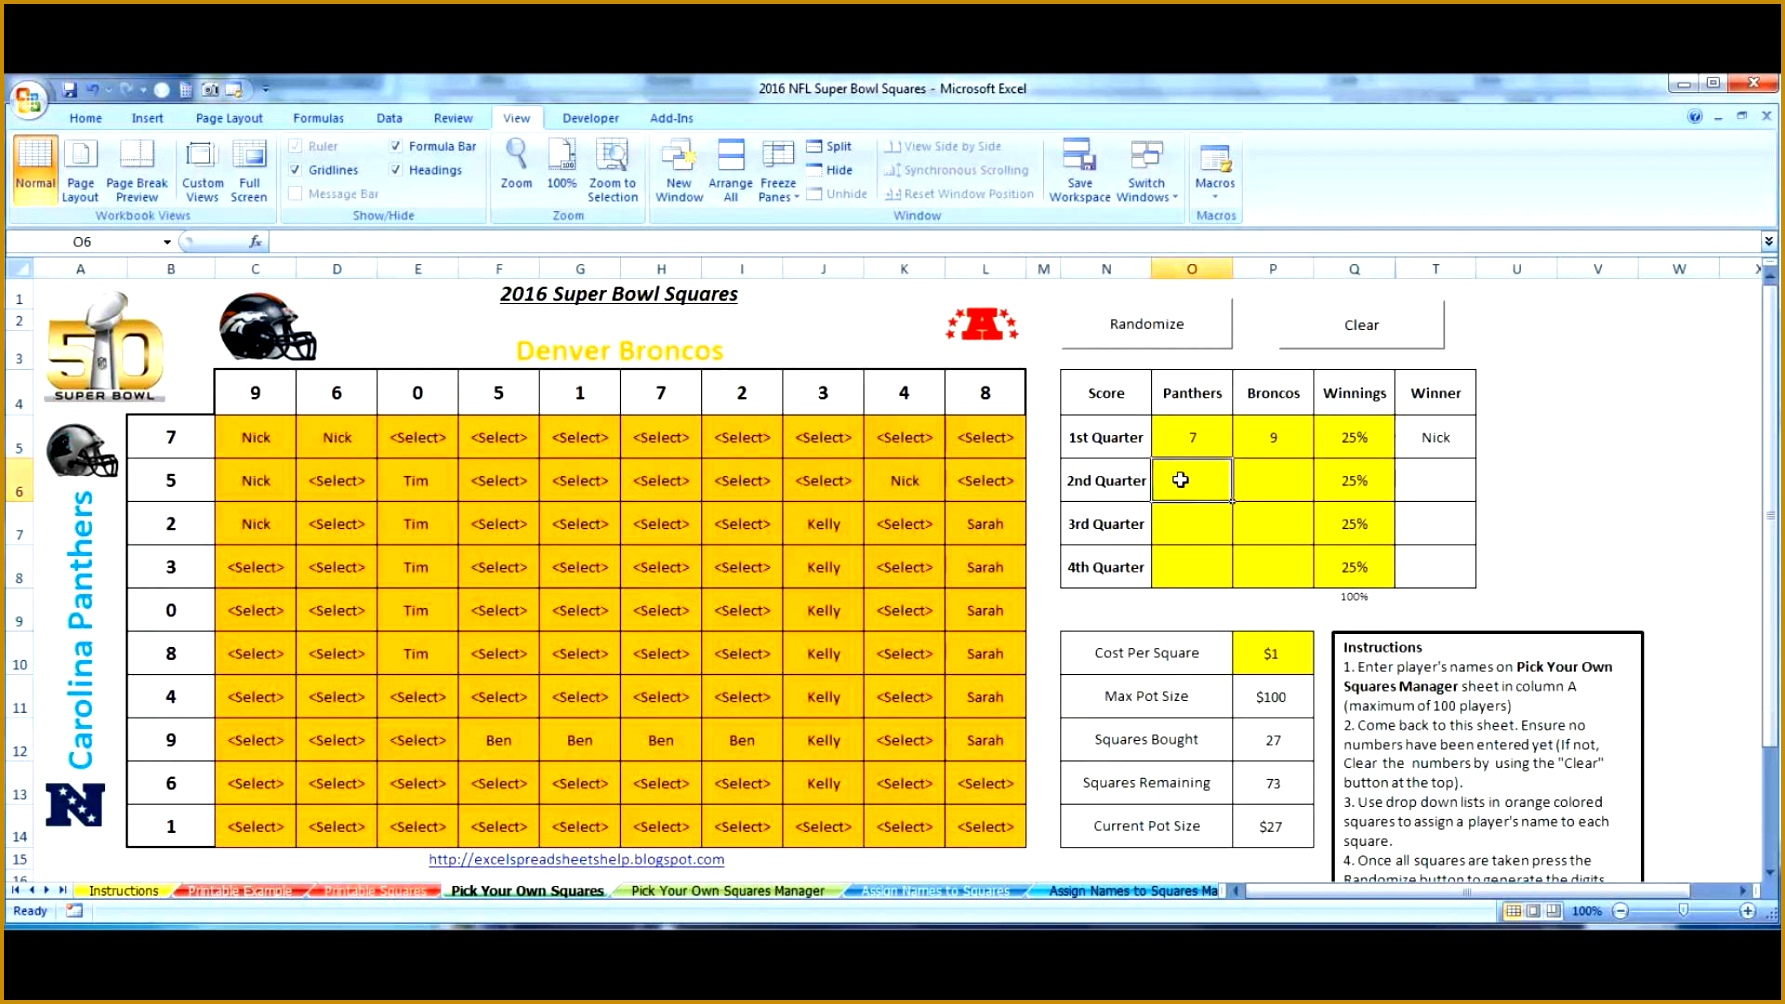 Super Bowl Squares 2016 Excel Template for fice Pools How to Use 17851004